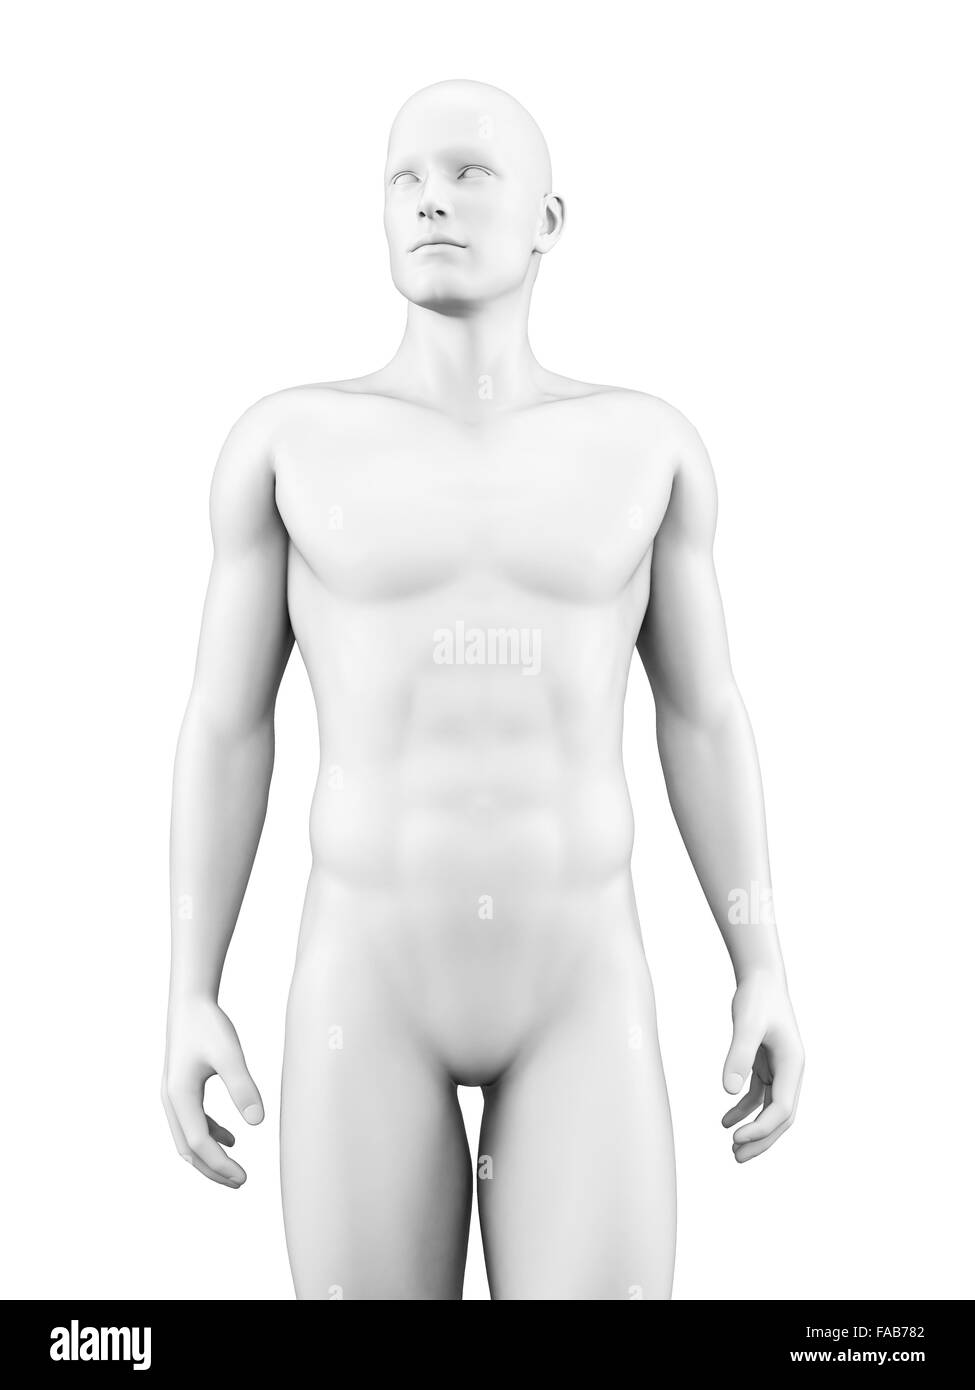 Human body, computer illustration. - Stock Image